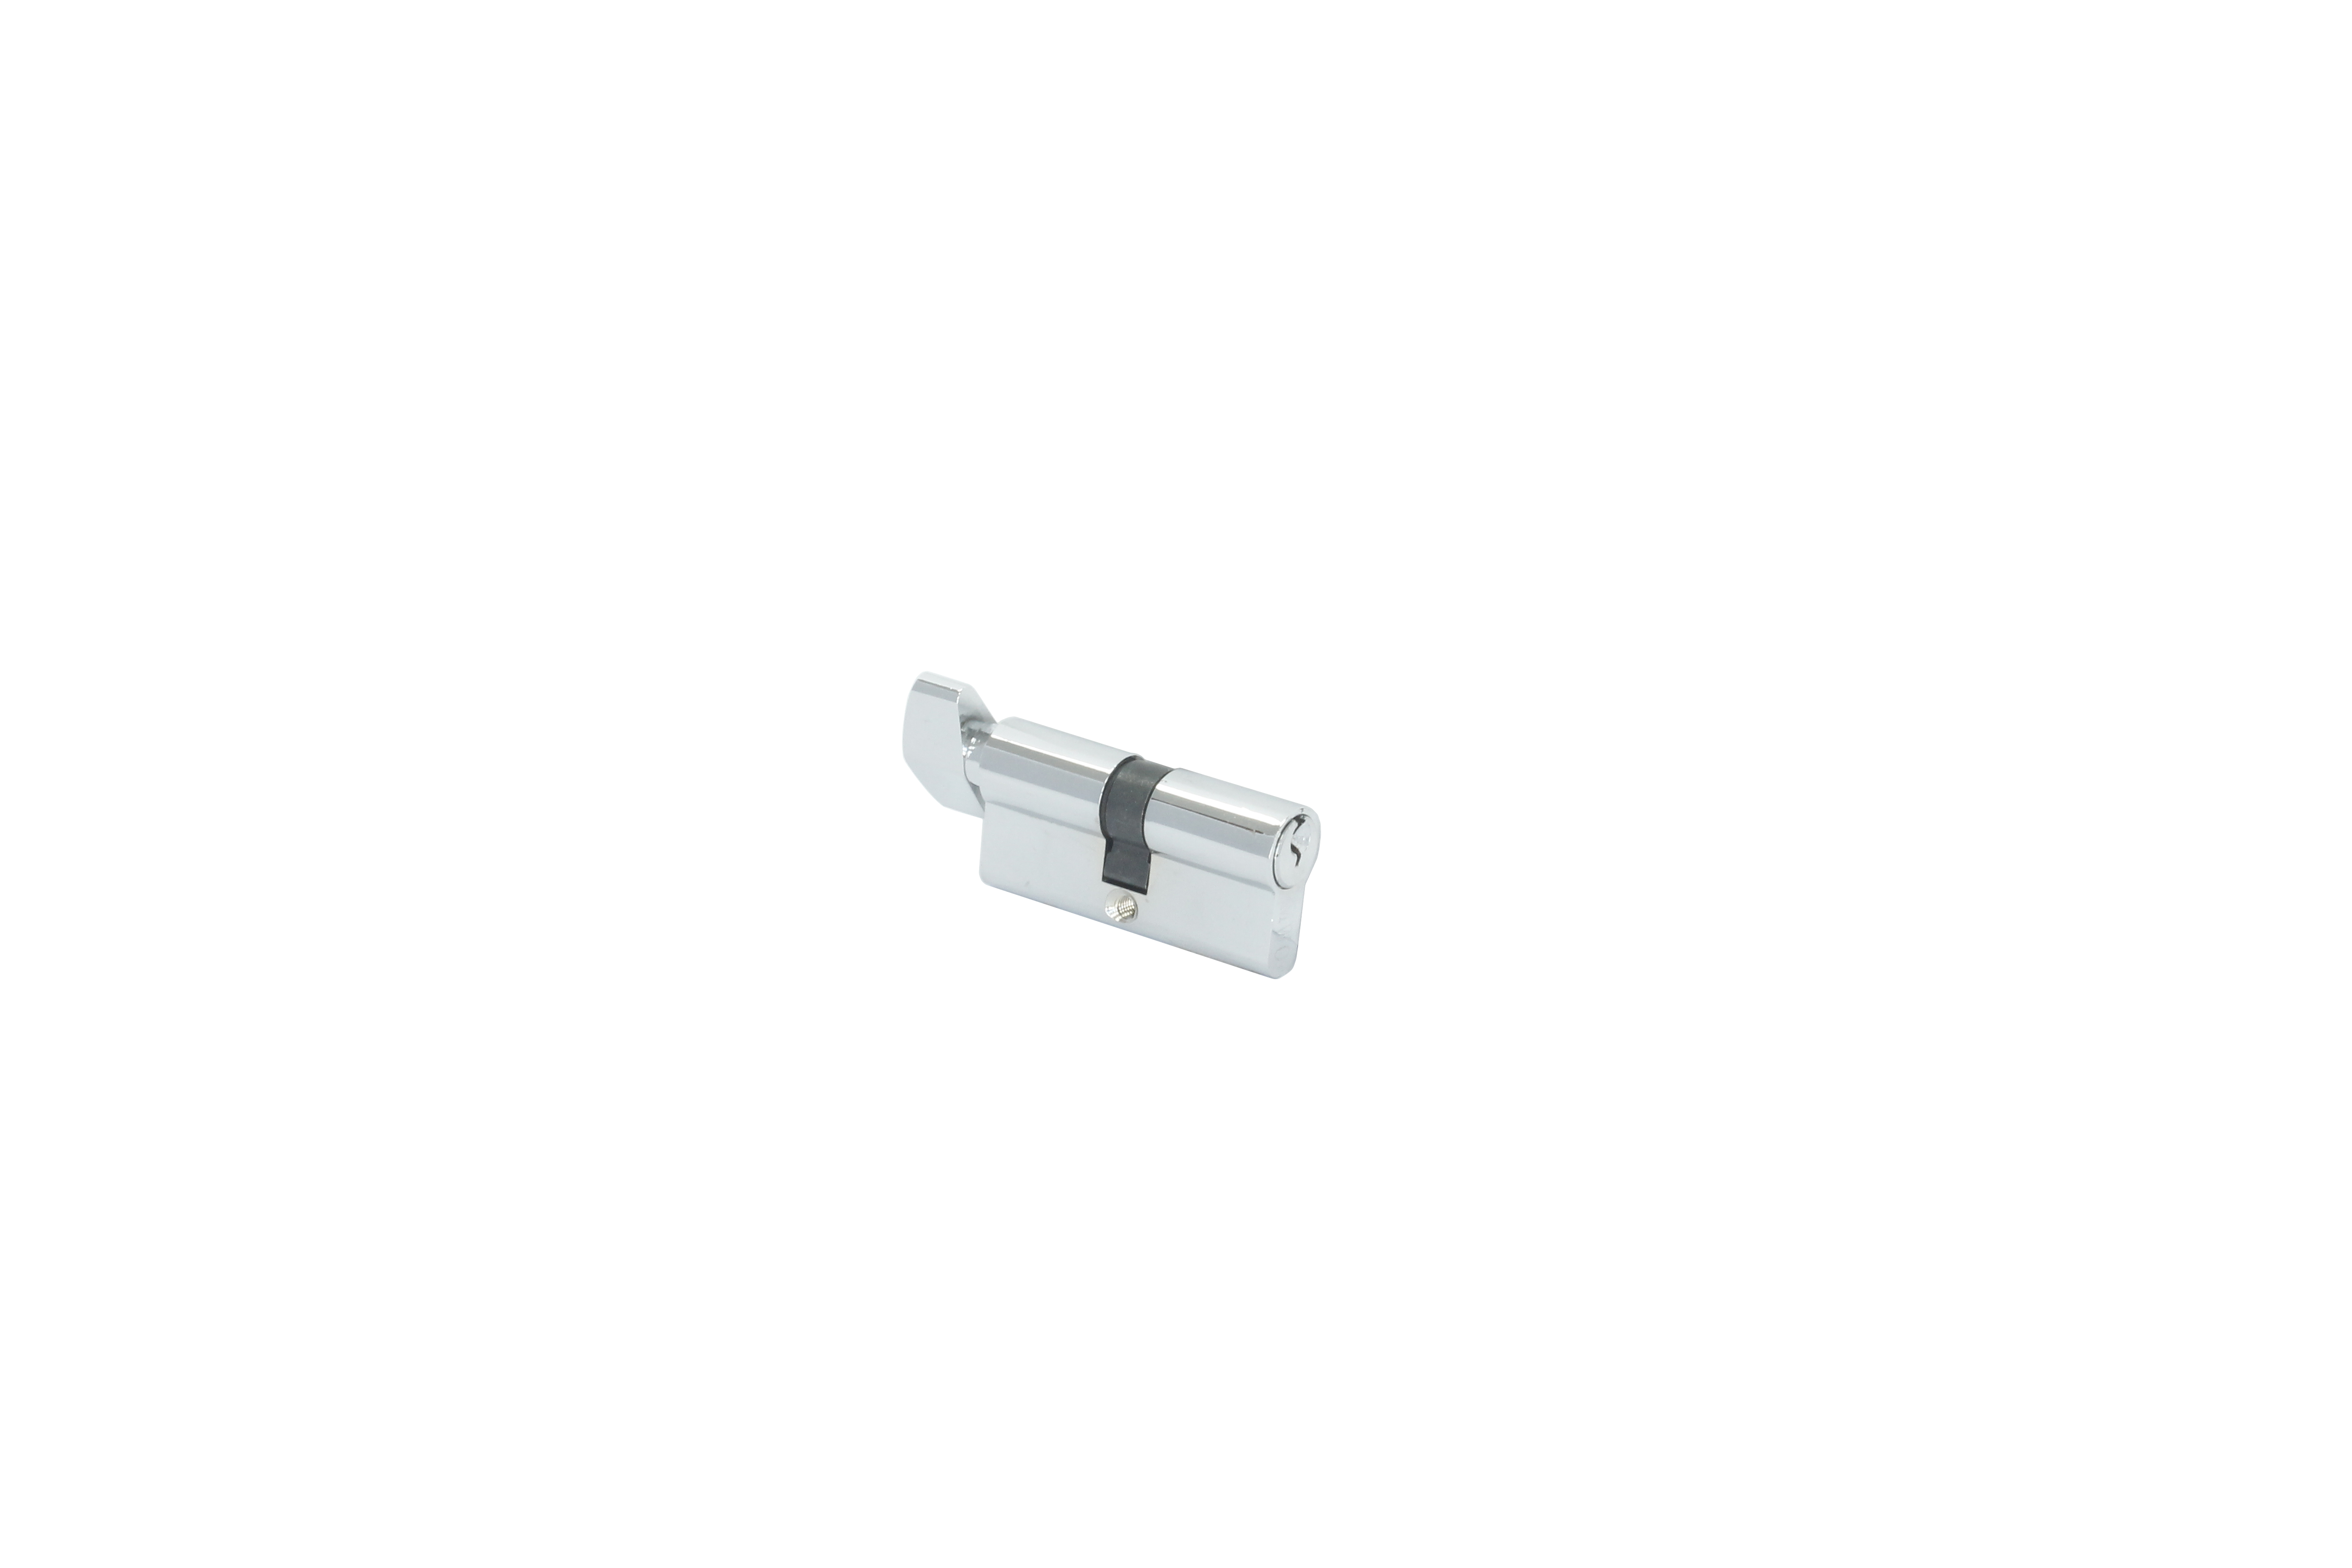 017 T-T Thumb-Turn Key Cylinder